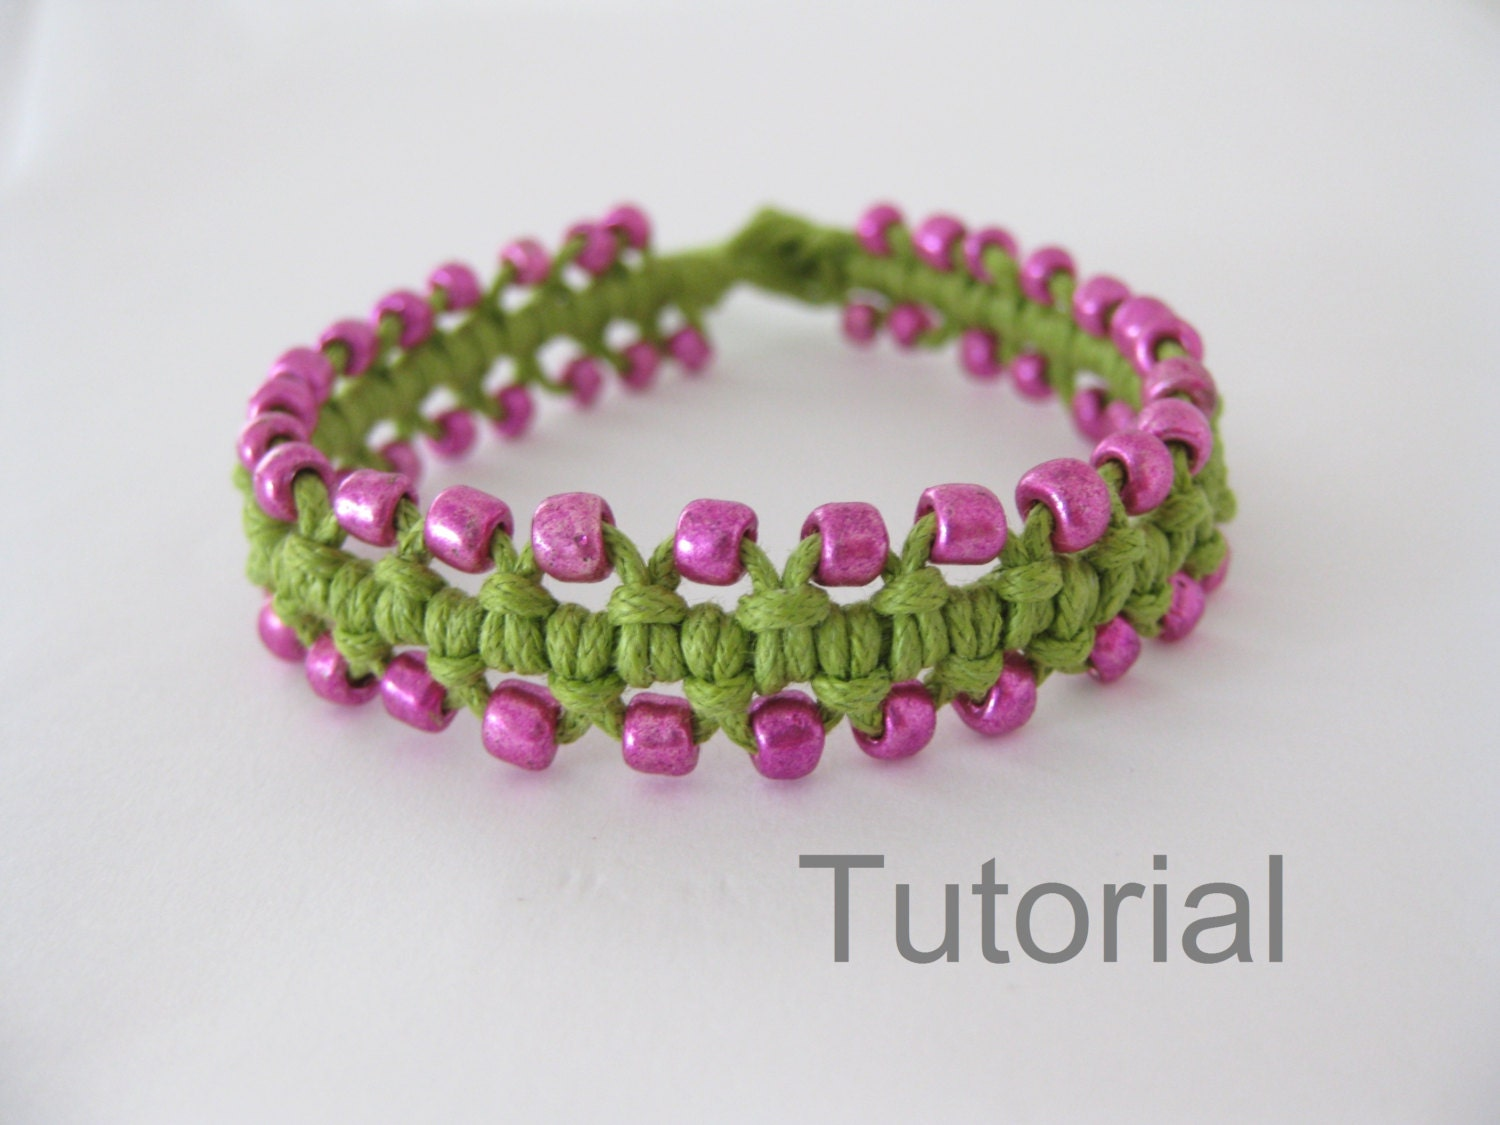 beaded bracelet pattern macrame tutorial pdf green pink xmas. Black Bedroom Furniture Sets. Home Design Ideas